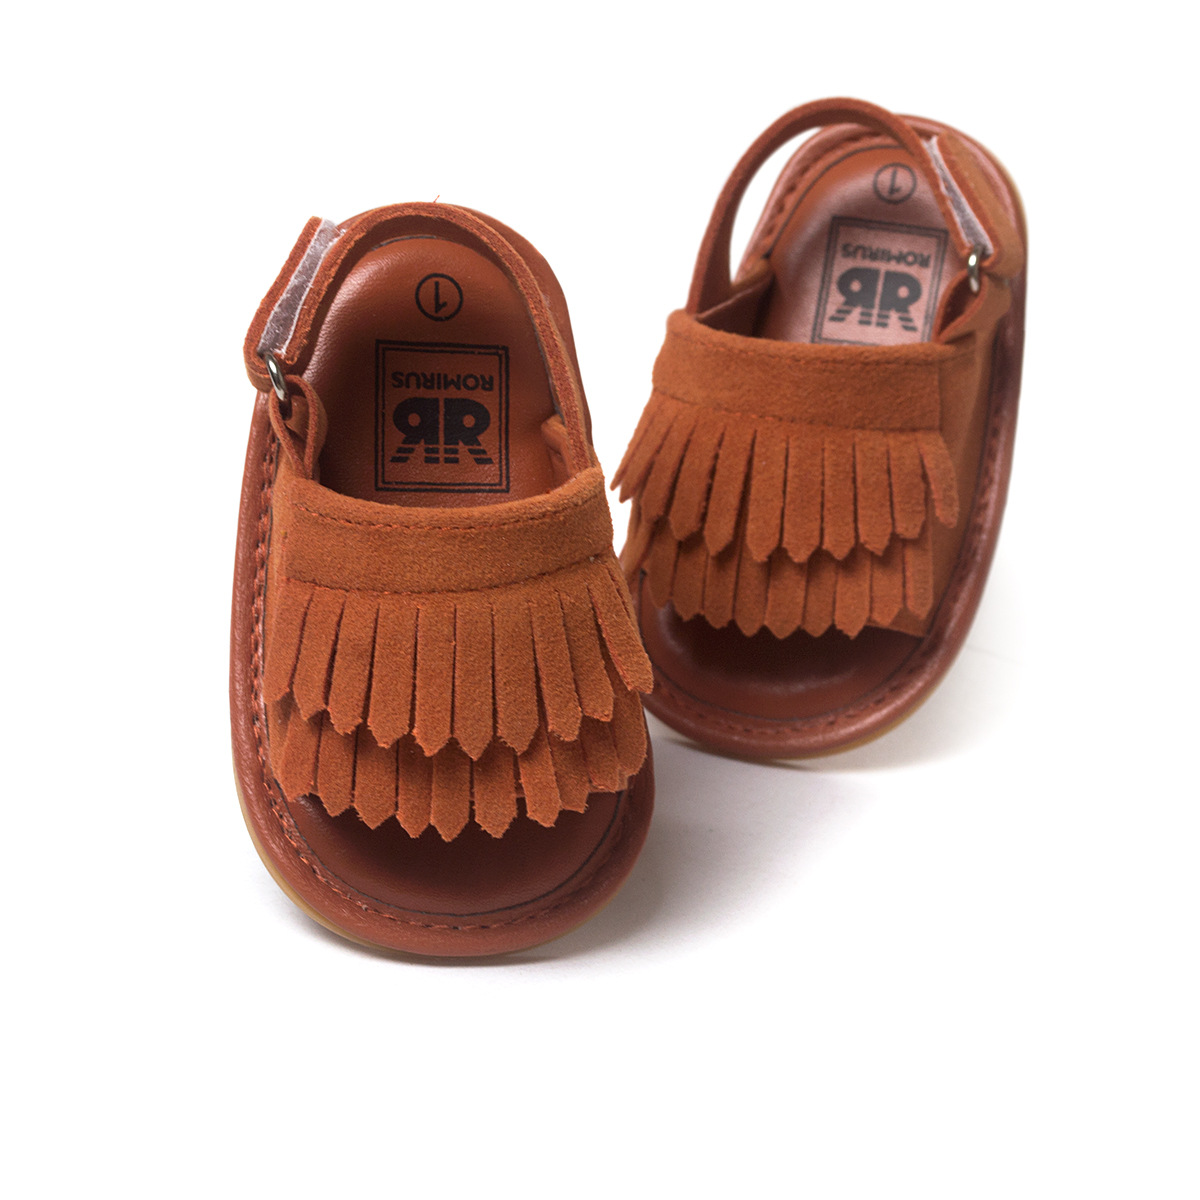 ROMIRUS 2016 New Summer Style Baby Moccasins Soft Bottom Fringe Candy Color Girls Toddler Shoes Baby Slippers Boys prewalkers